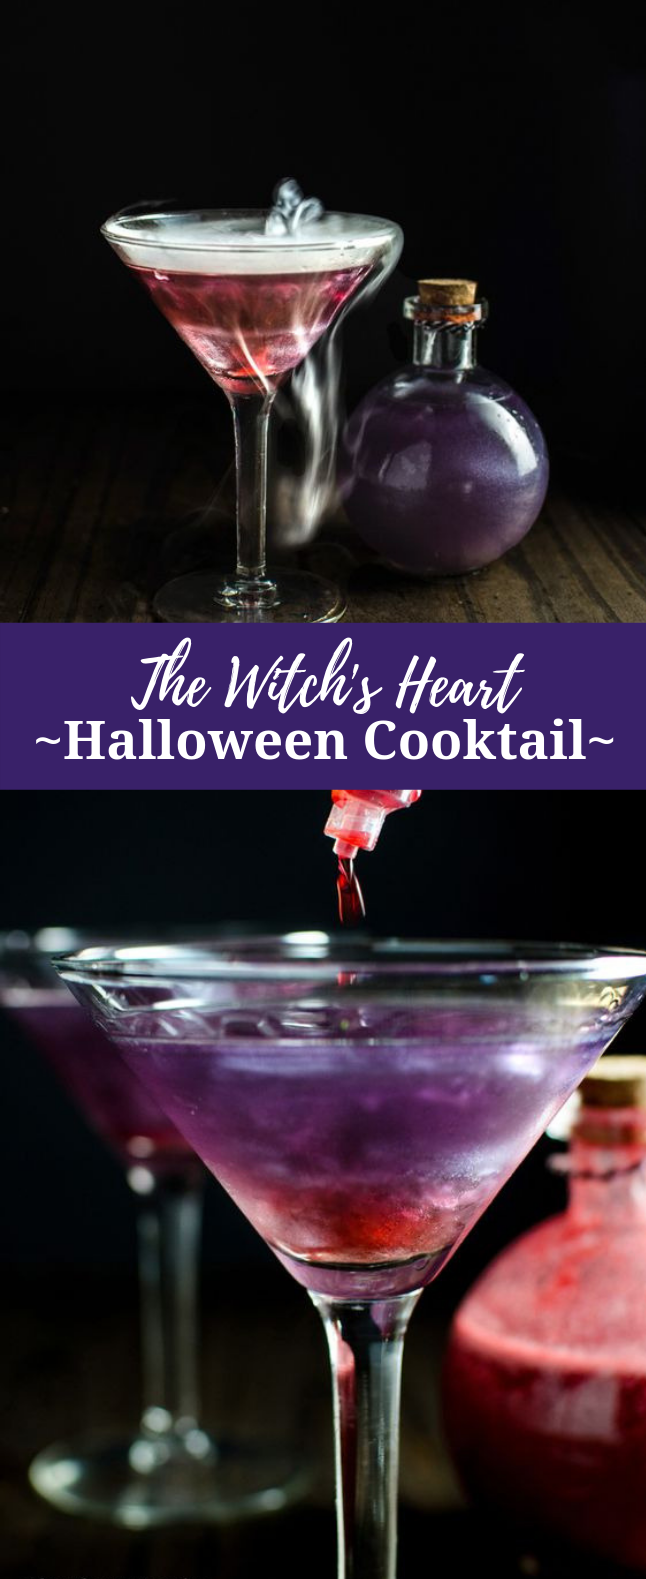 The Witch's Heart – Halloween Cocktail #Drinks #PartyDrink